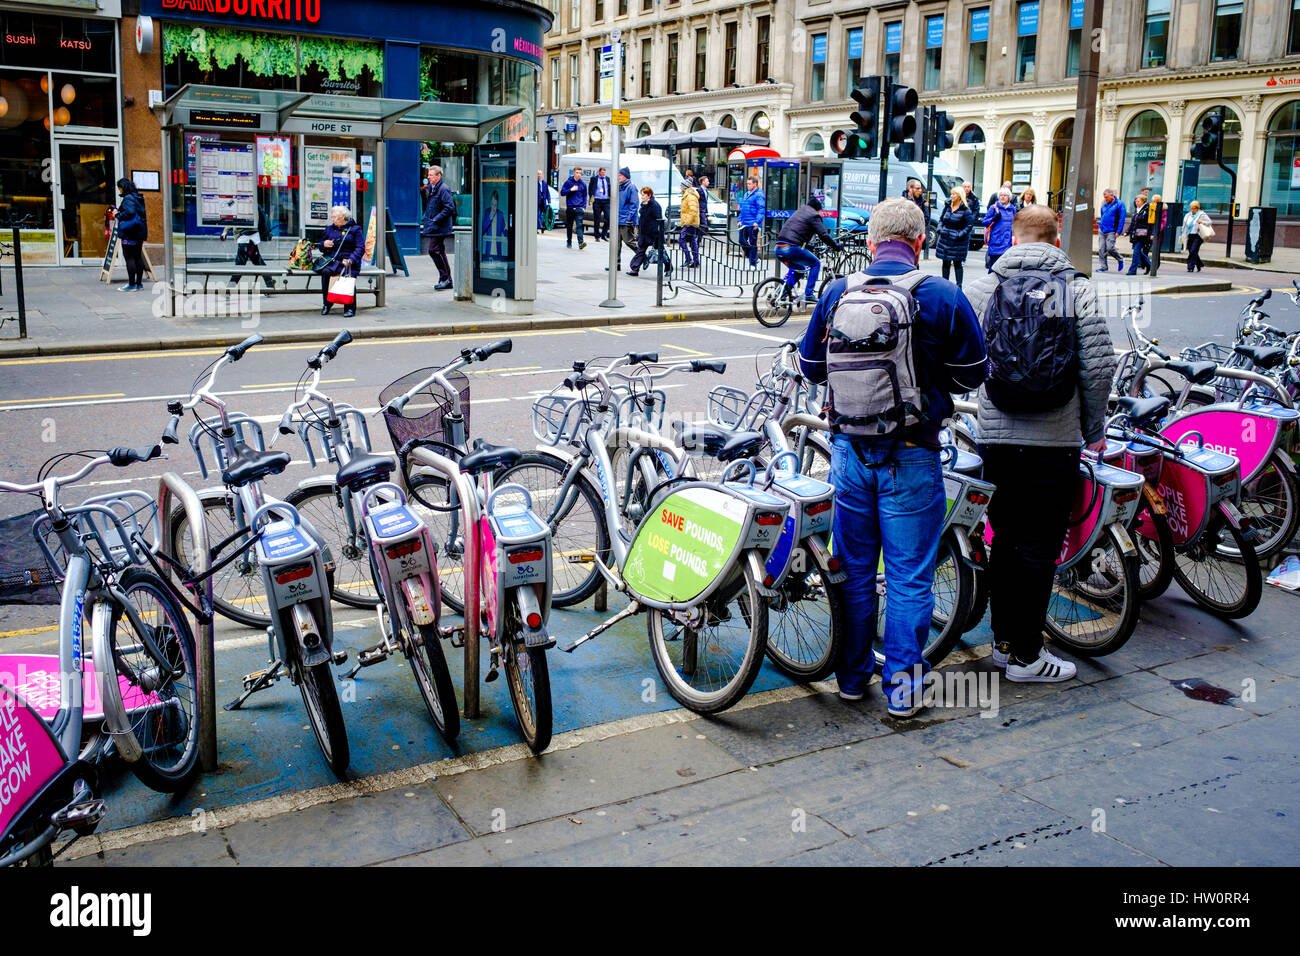 Hire bicycles in Glasgow City Centre - Stock Image